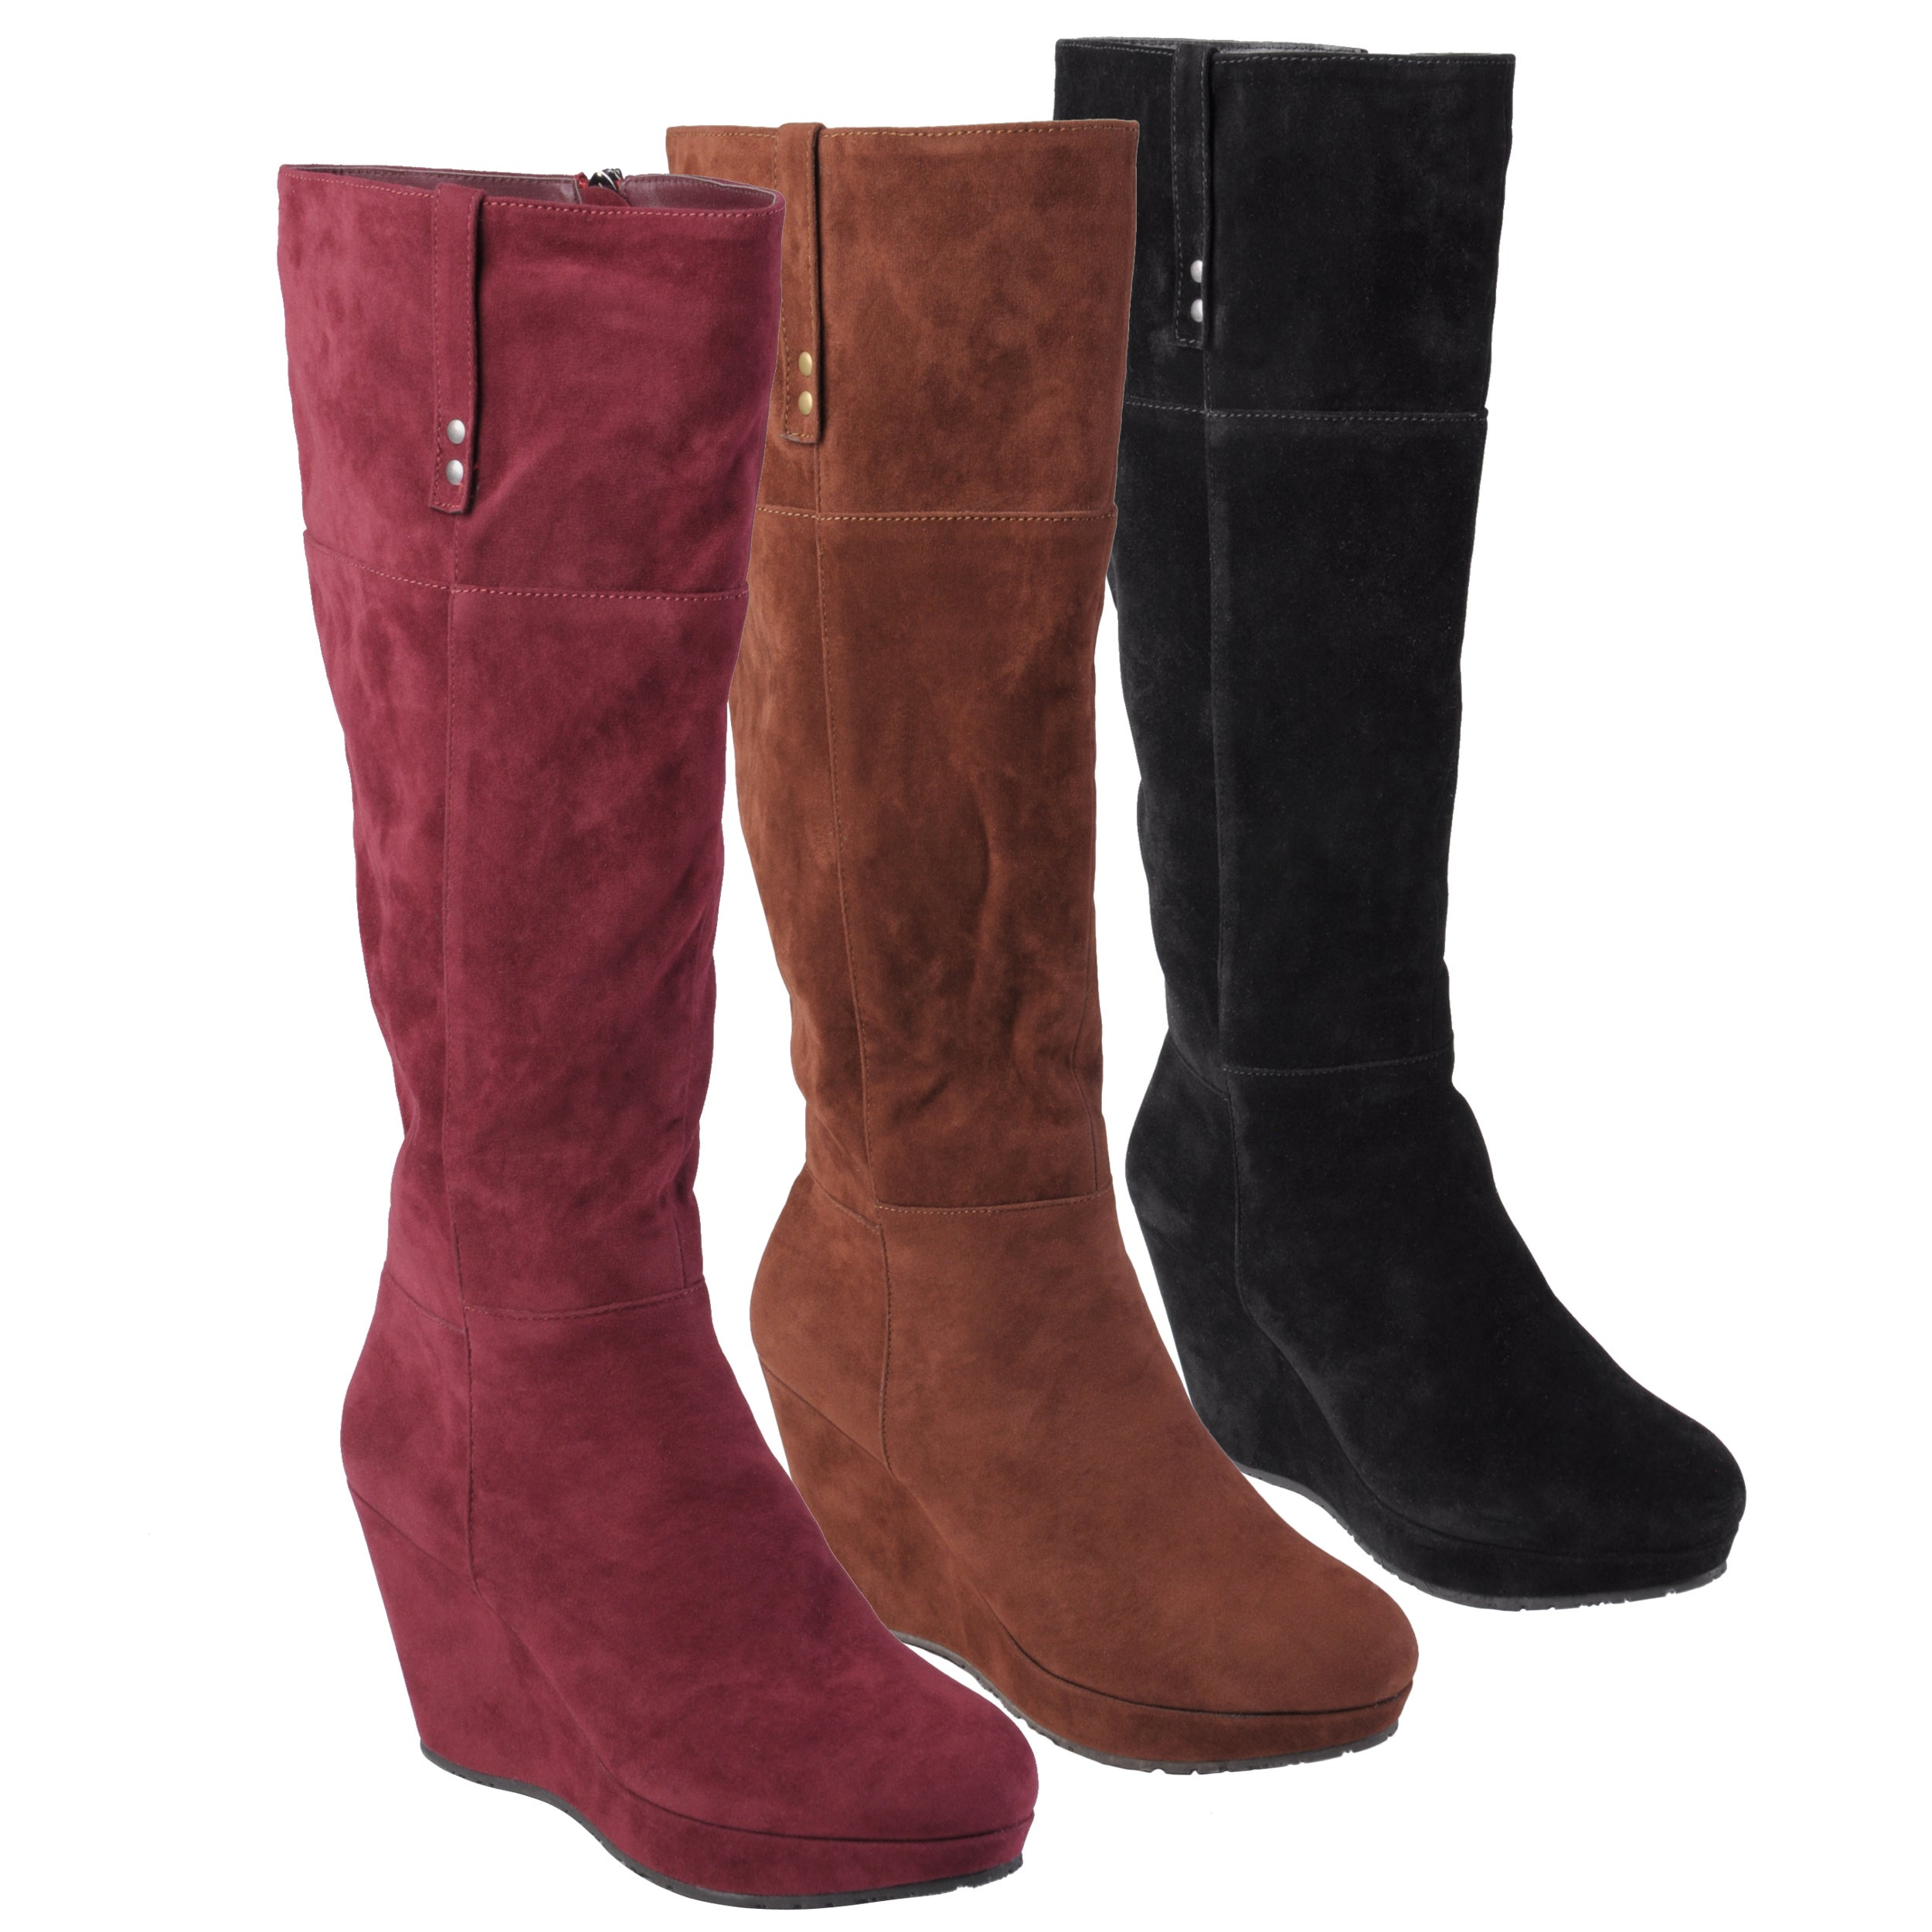 Journee Collection Women s Trish Sueded Tall Wedge Boots Today: $42